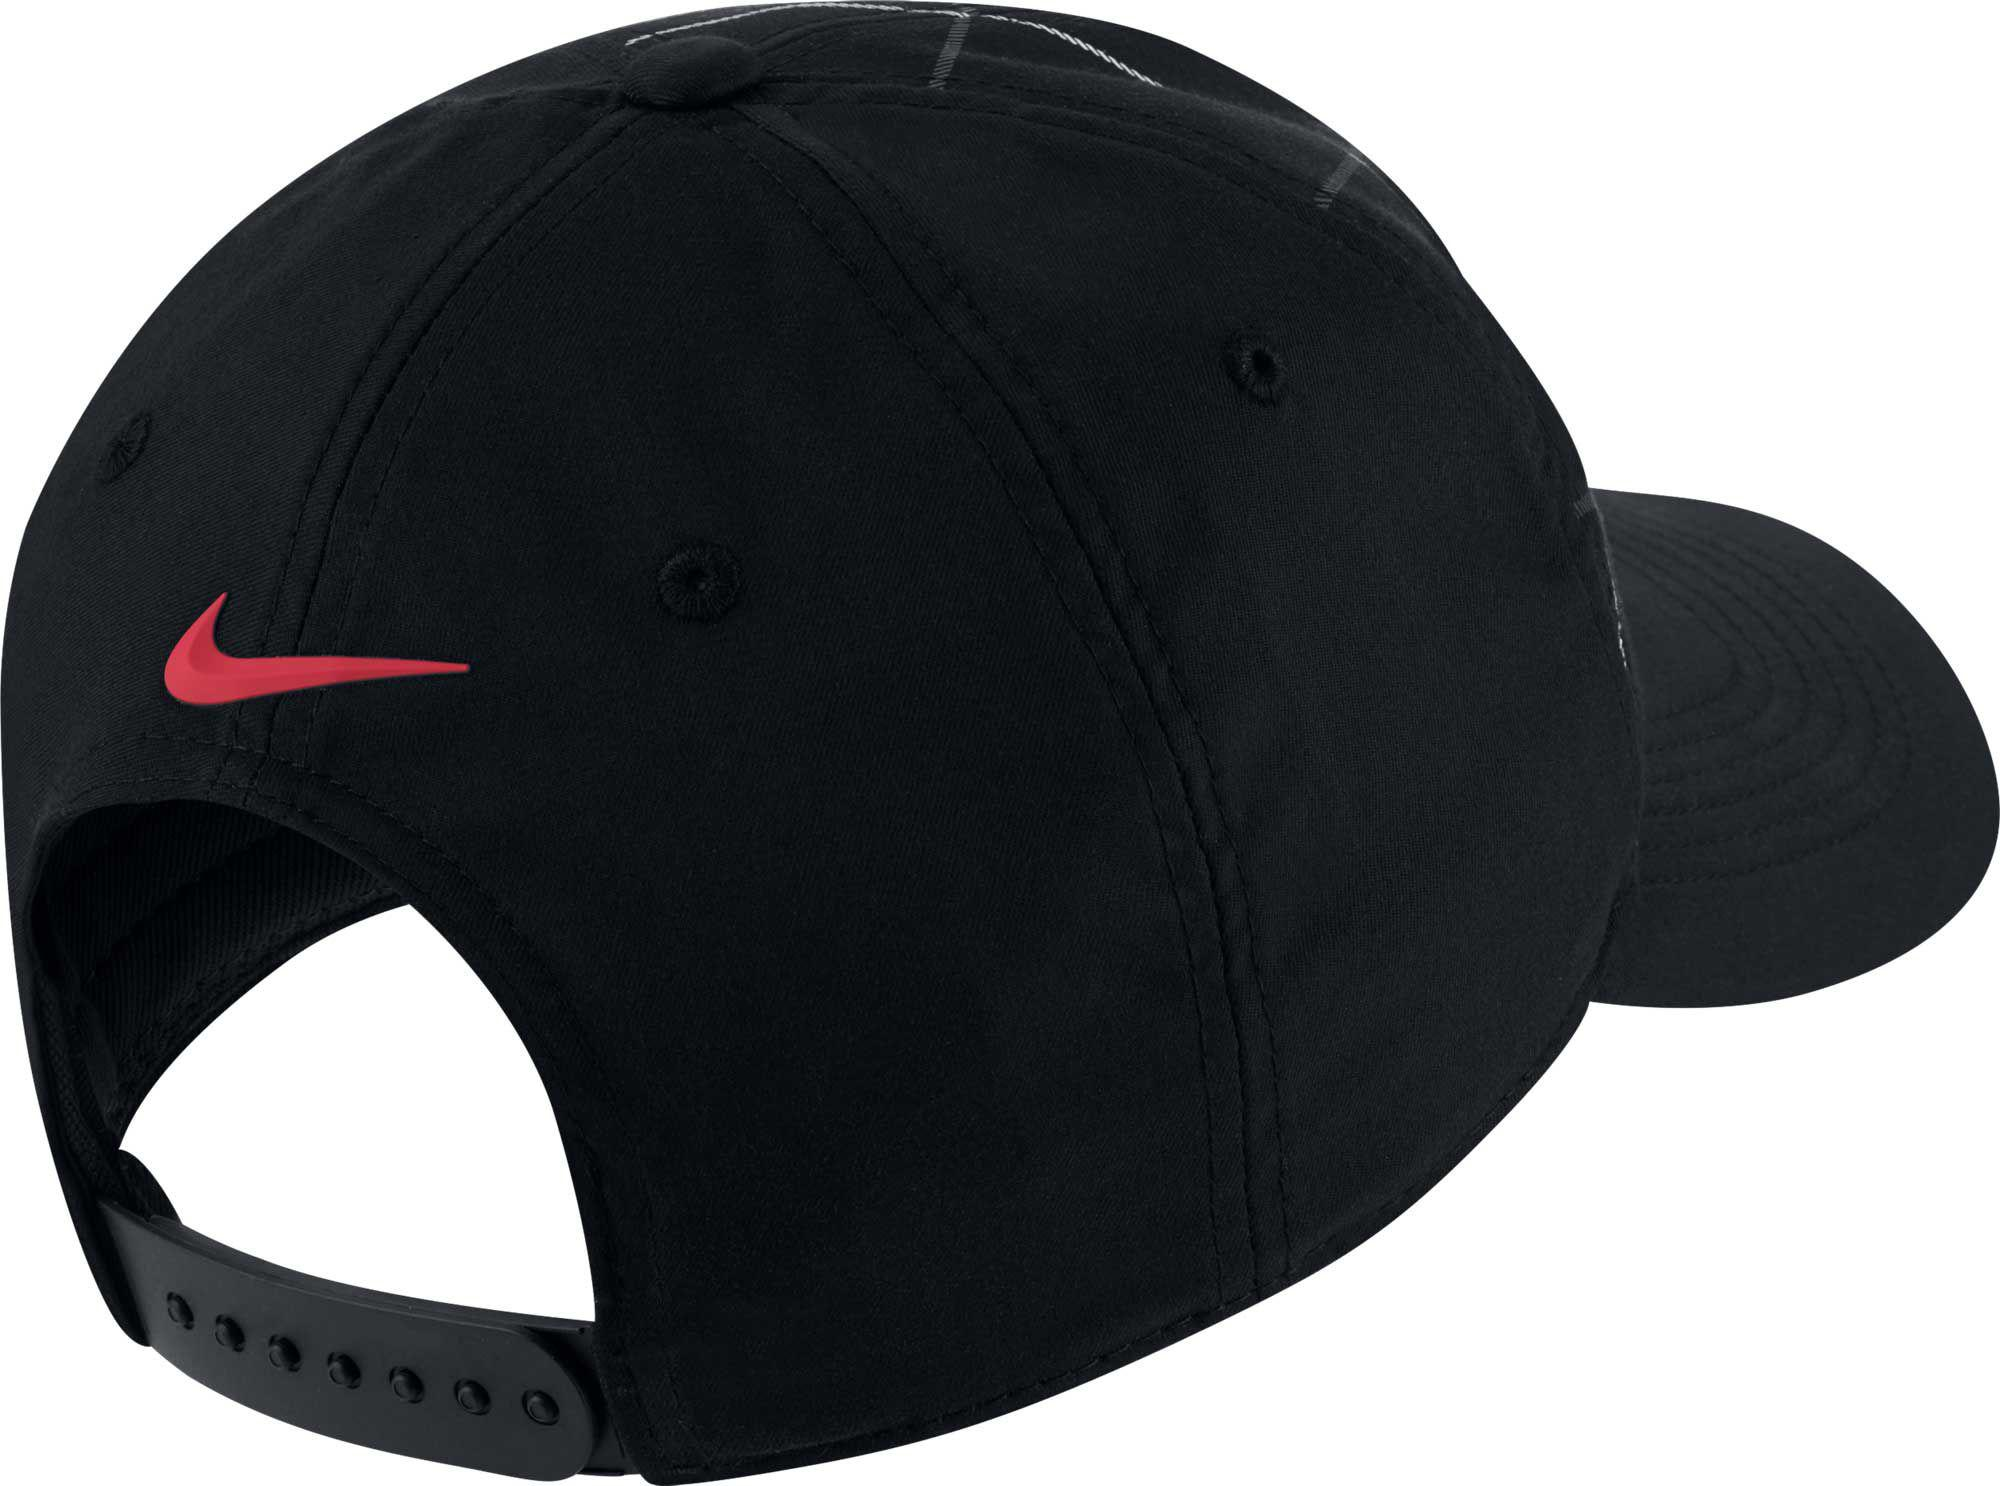 Nike - Black Aerobill Classic99 Golf Hat for Men - Lyst. View fullscreen e50d561b75fe